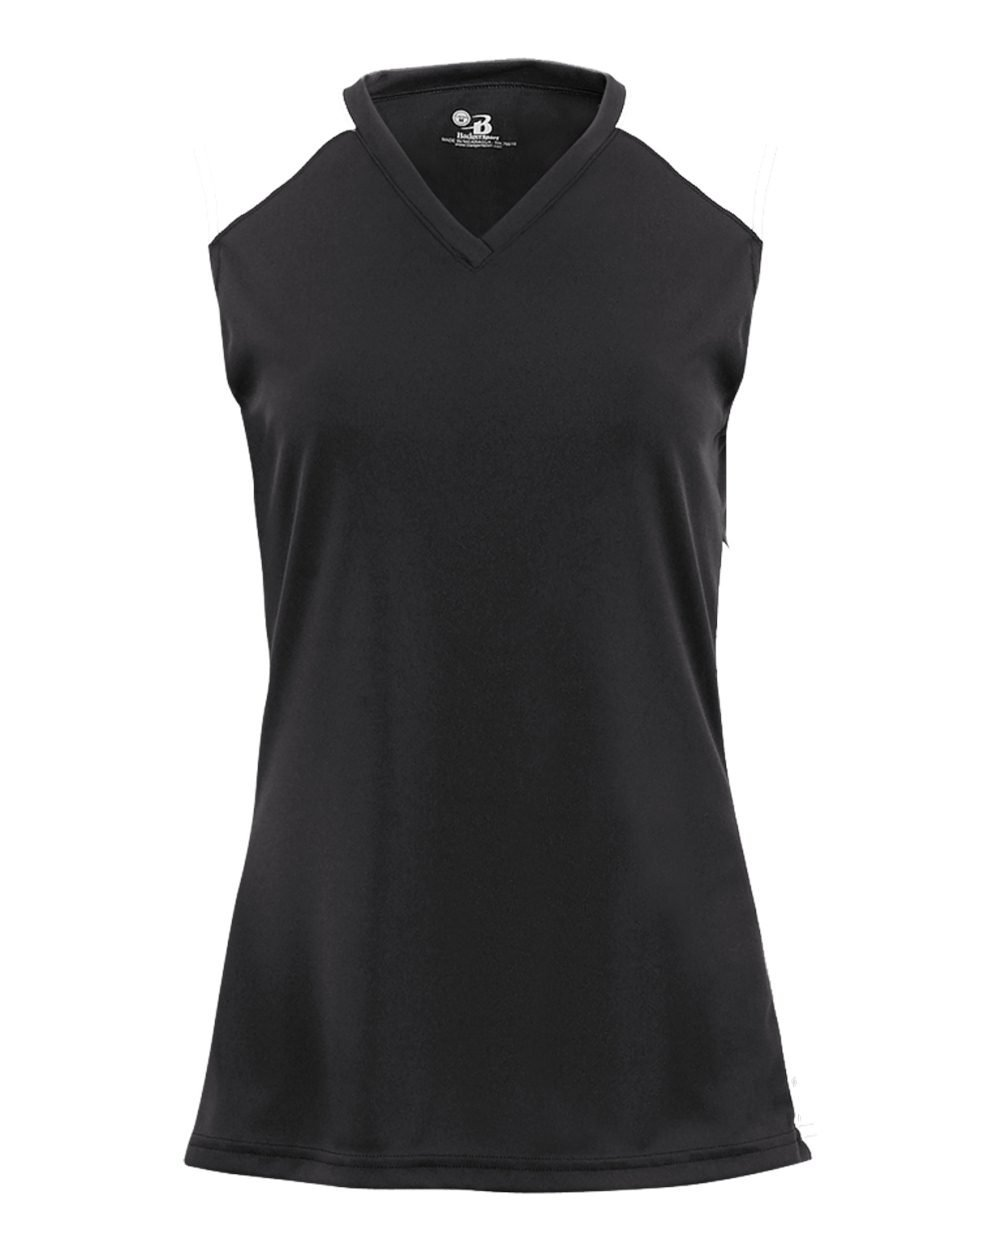 Sleeveless Ladies & Girls V-Neck 2-Color Moisture Sleeveless V-Neck 2-Color Wicking Jersey Top (Available in 13 Colors for All Sports, Athletics & Casual Wear)